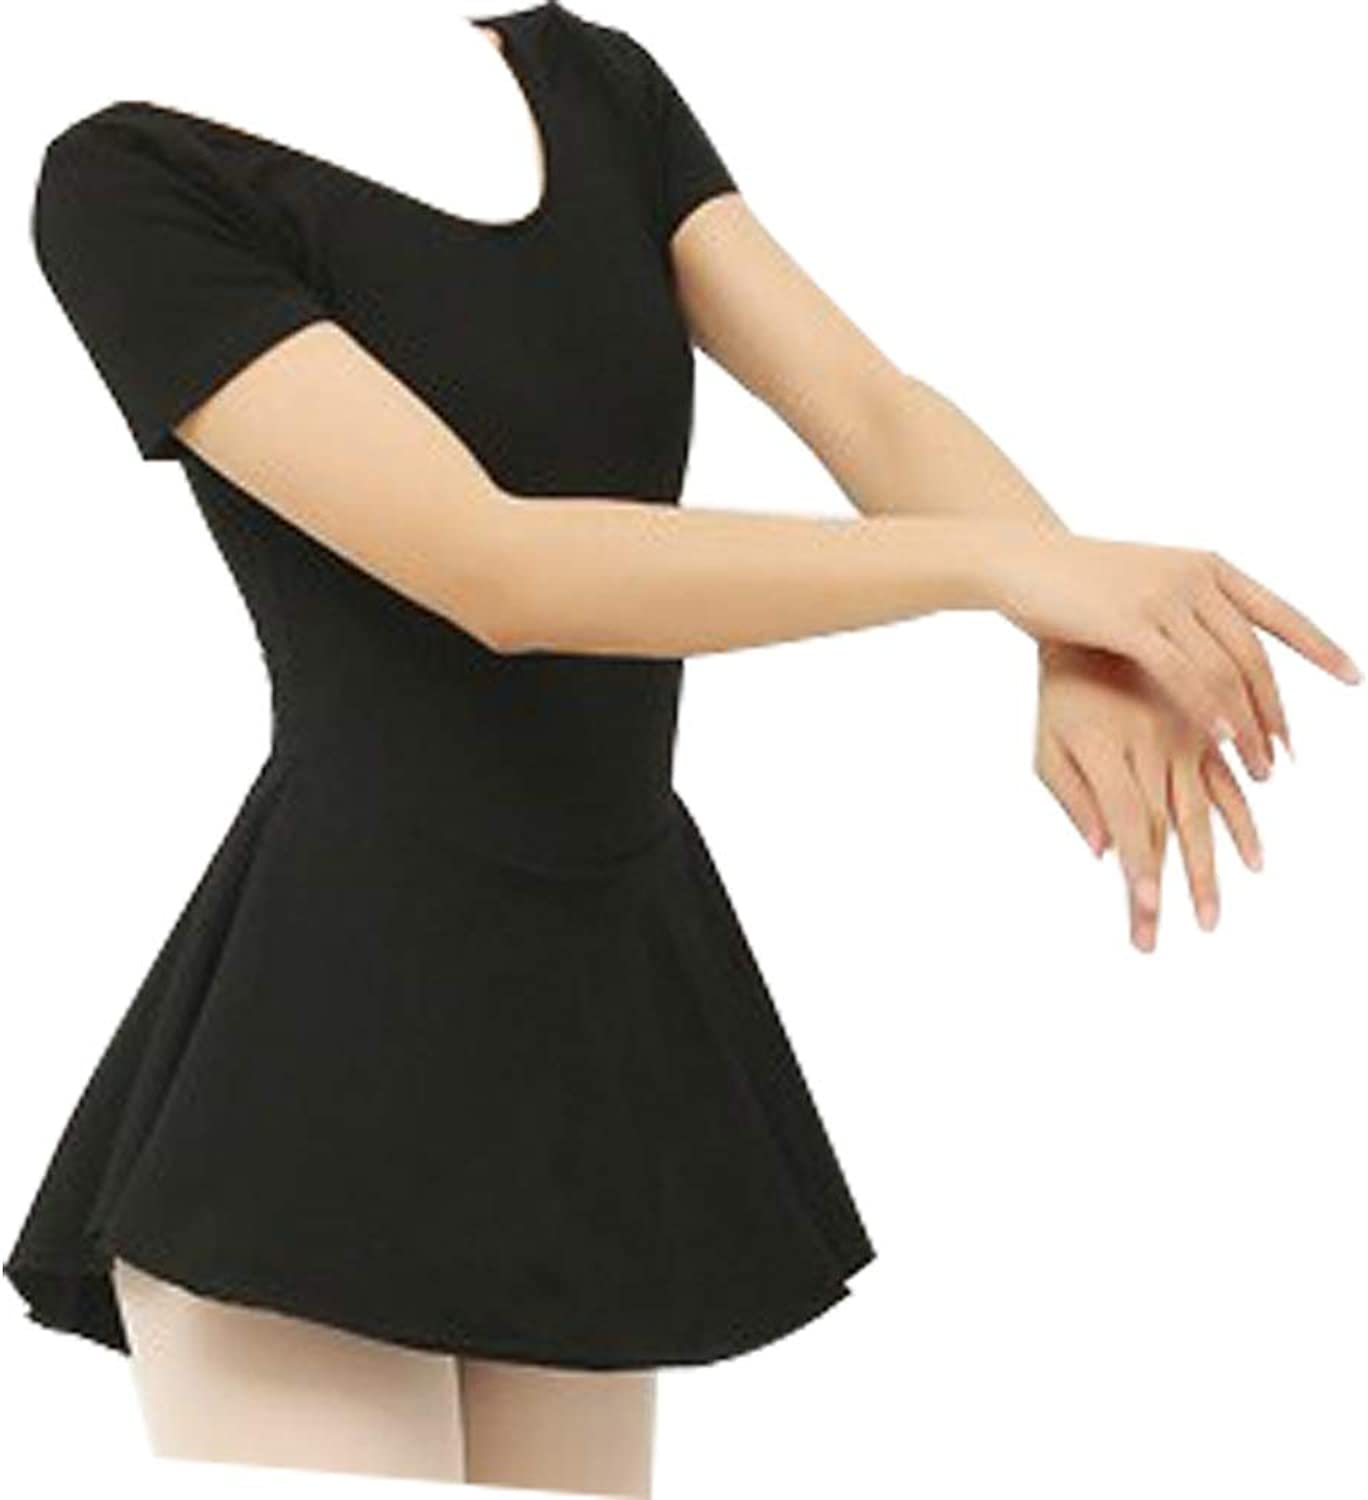 Xiao Jian Ballet Skirt Adult Practice Clothes Full Body Dance Clothing Female Siamese Skirt Suit Short Sleeve Gymnastics Suit Gymnastics Clothing Small Size Two Yards Dancing unifom